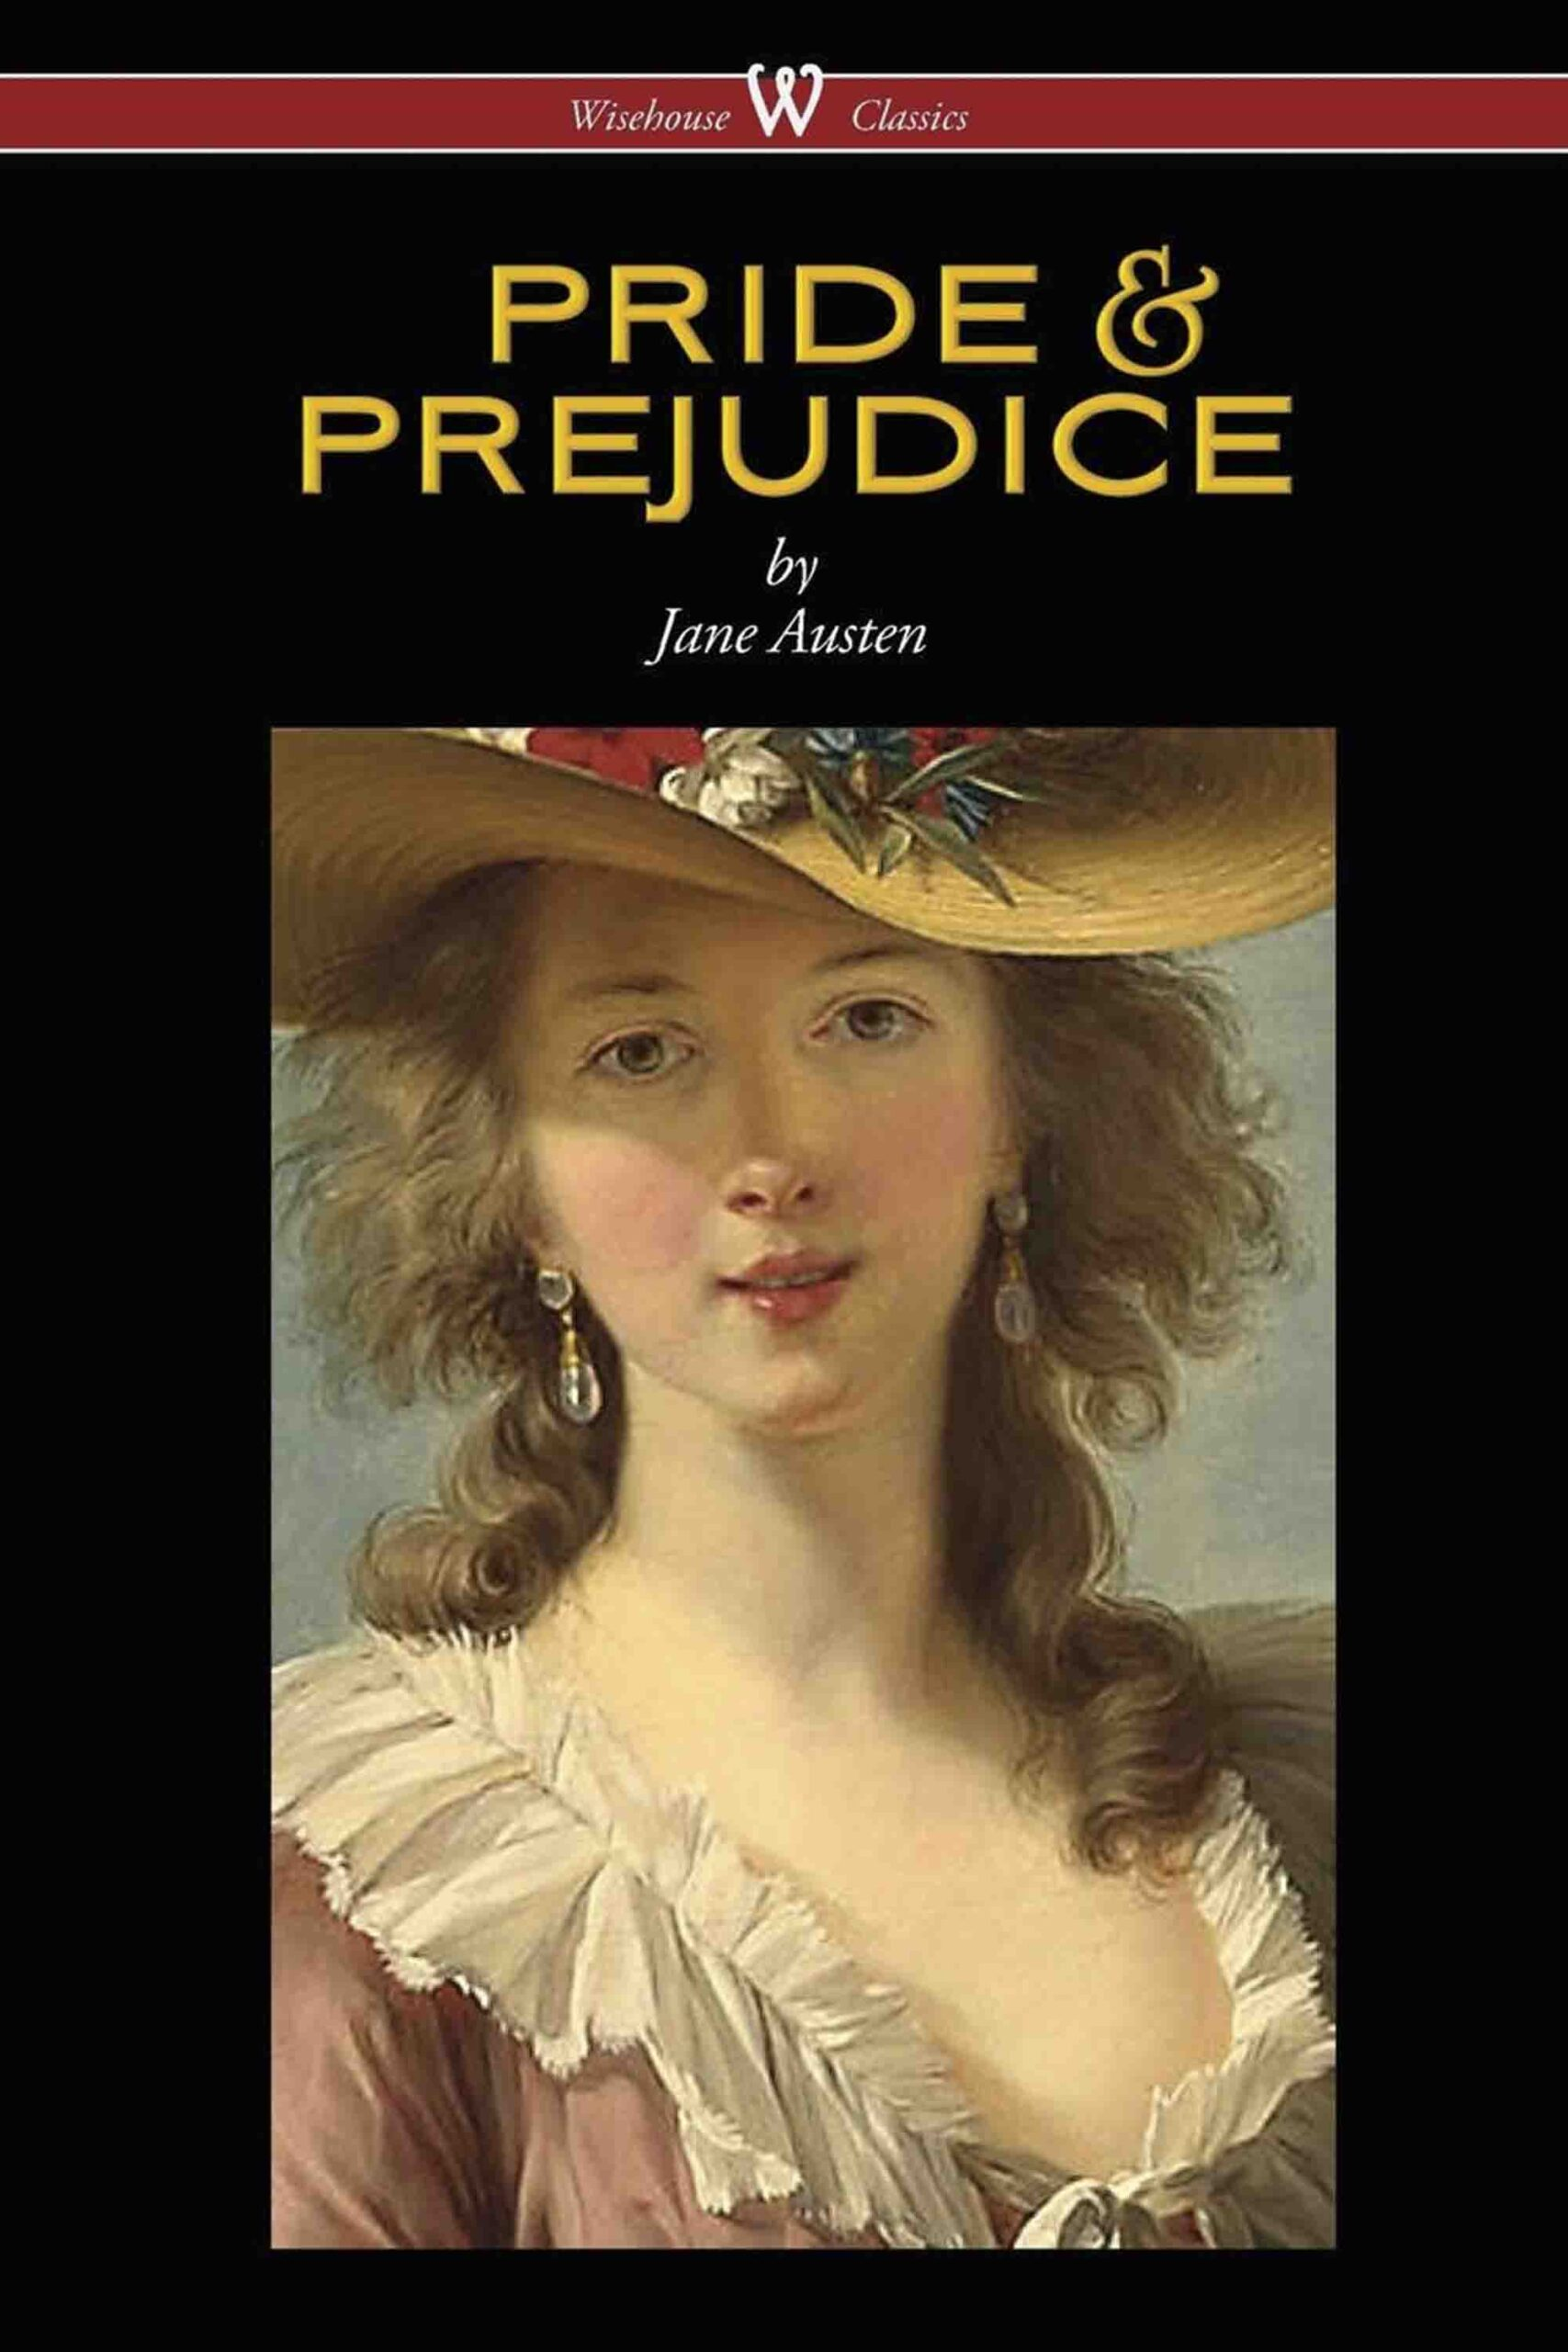 Pride and Prejudice (Wisehouse Classics – with Illustrations by H.M. Brock)